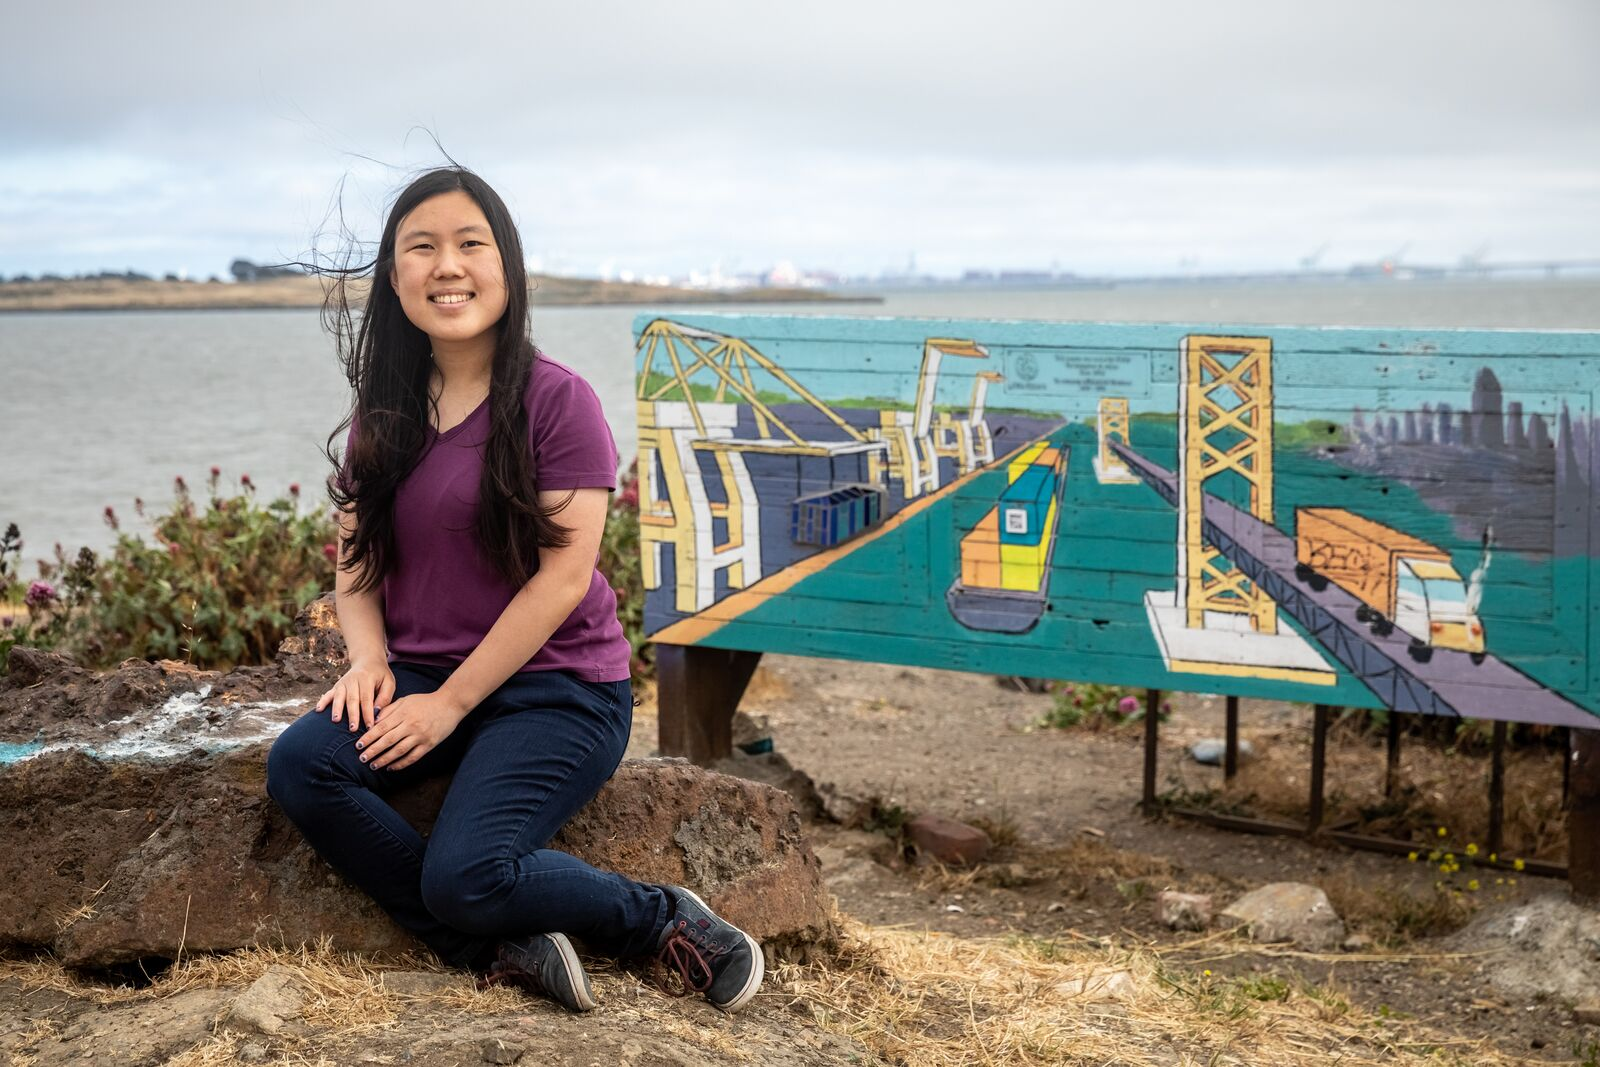 UC Berkeley student Heidi Dong poses for a photo with the installation she co-created at the Albany Bulb. Credit: Kelly Sullivan